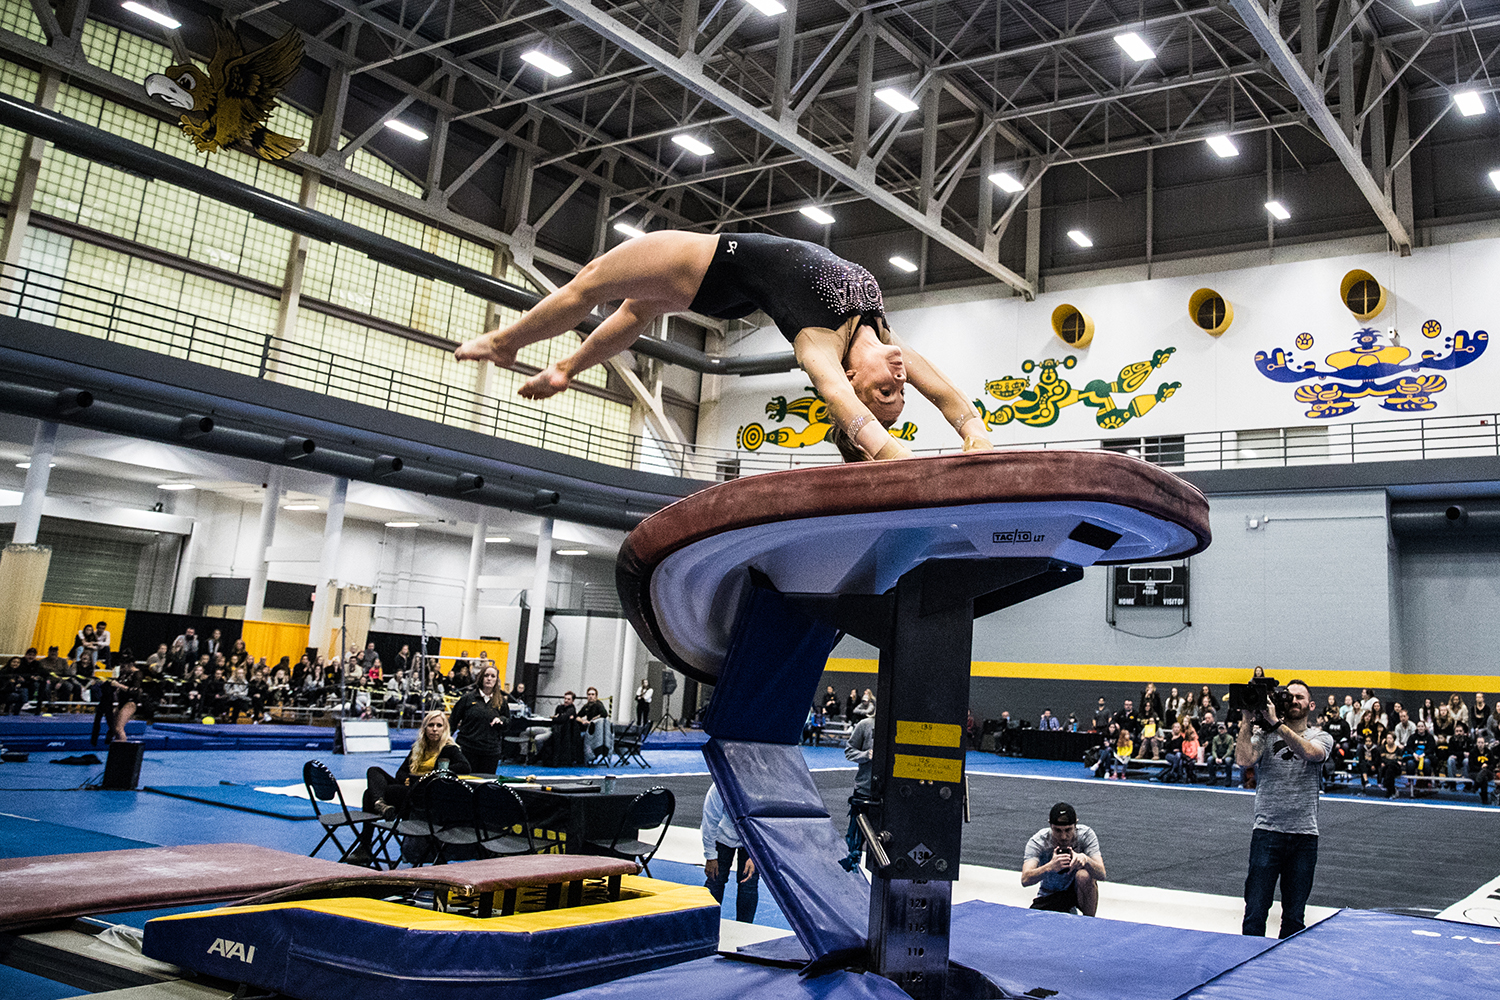 Iowa's Lauren Guerin performs on the vault during the Women's Gymnastics Black and Gold Intrasquad Meet in the Field House on Saturday, Dec. 1, 2018. (Shivansh Ahuja/The Daily Iowan)